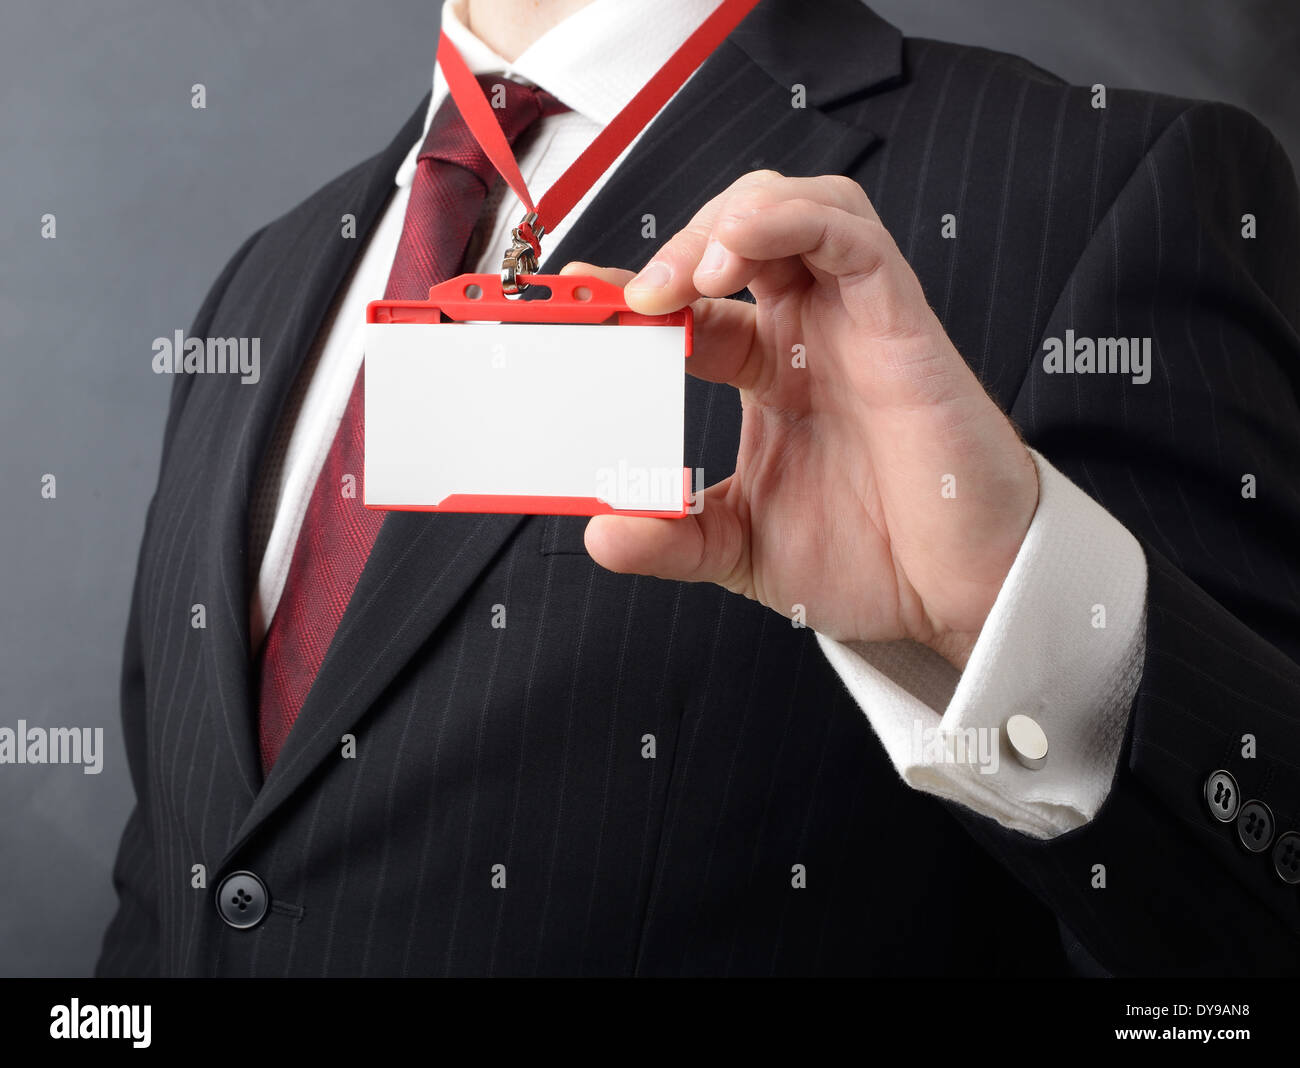 man in suit showing id or name badge - Stock Image